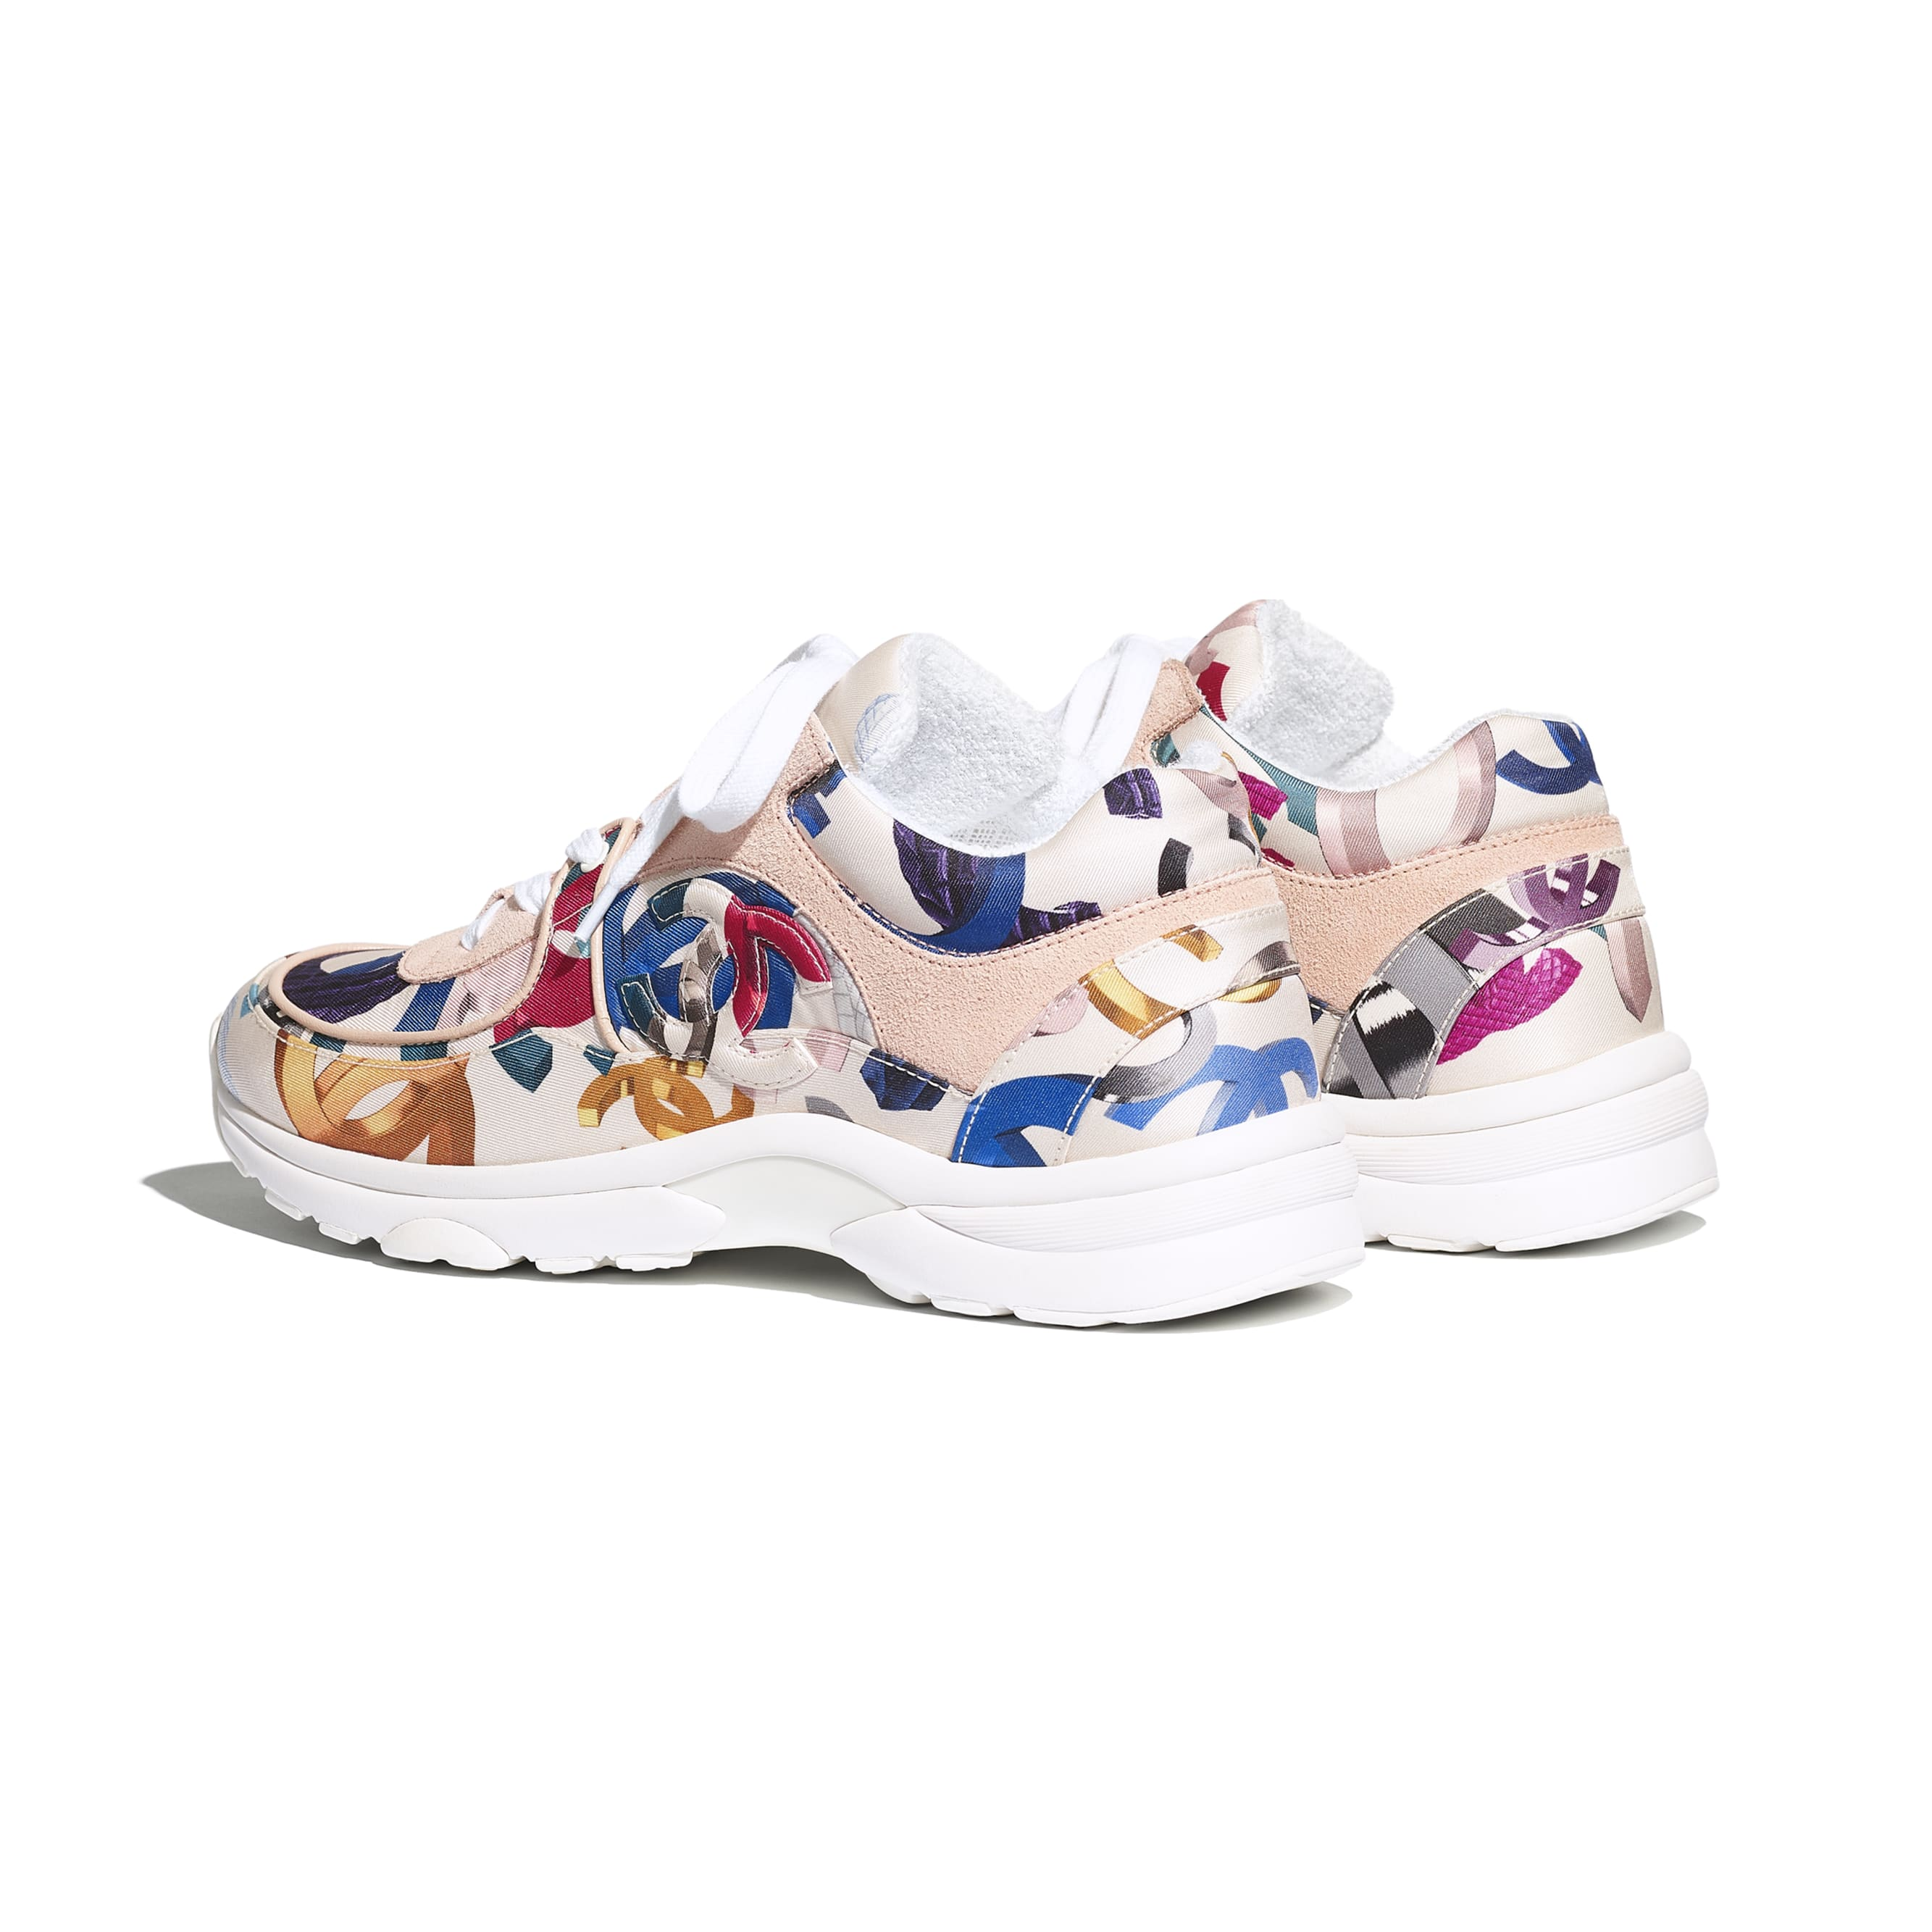 Sneakers - White & Multicolor - Printed Fabric & Suede Calfskin - CHANEL - Other view - see standard sized version